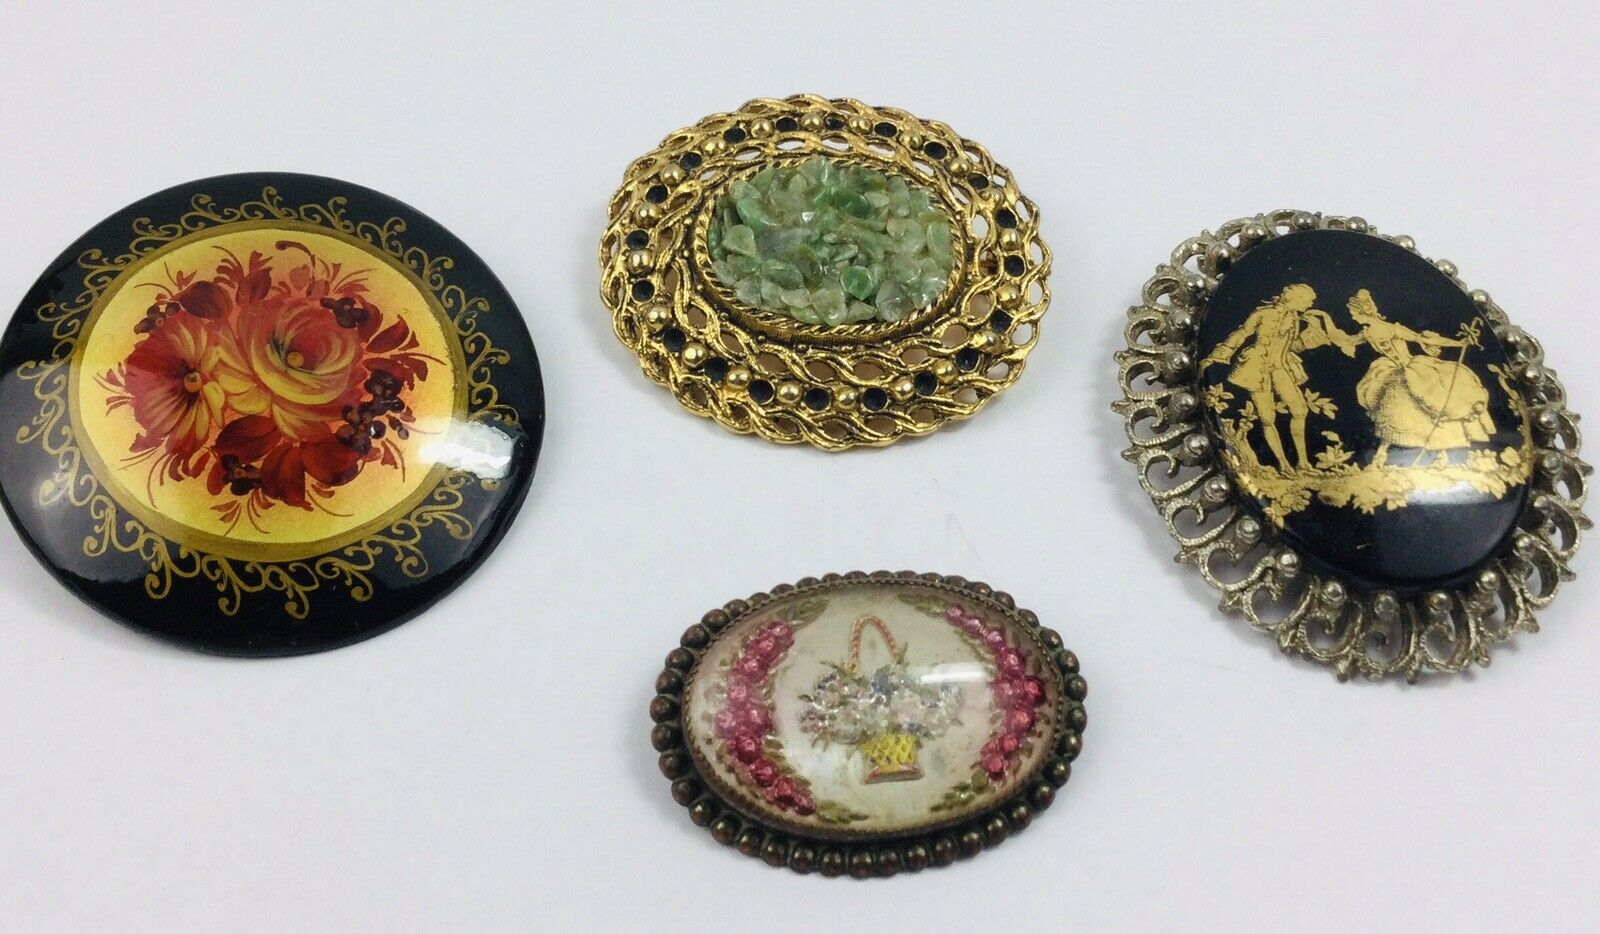 10 Vintage Antique Religious Christmas Holiday Pin Brooches Various Sizes Stones Round Oval Set